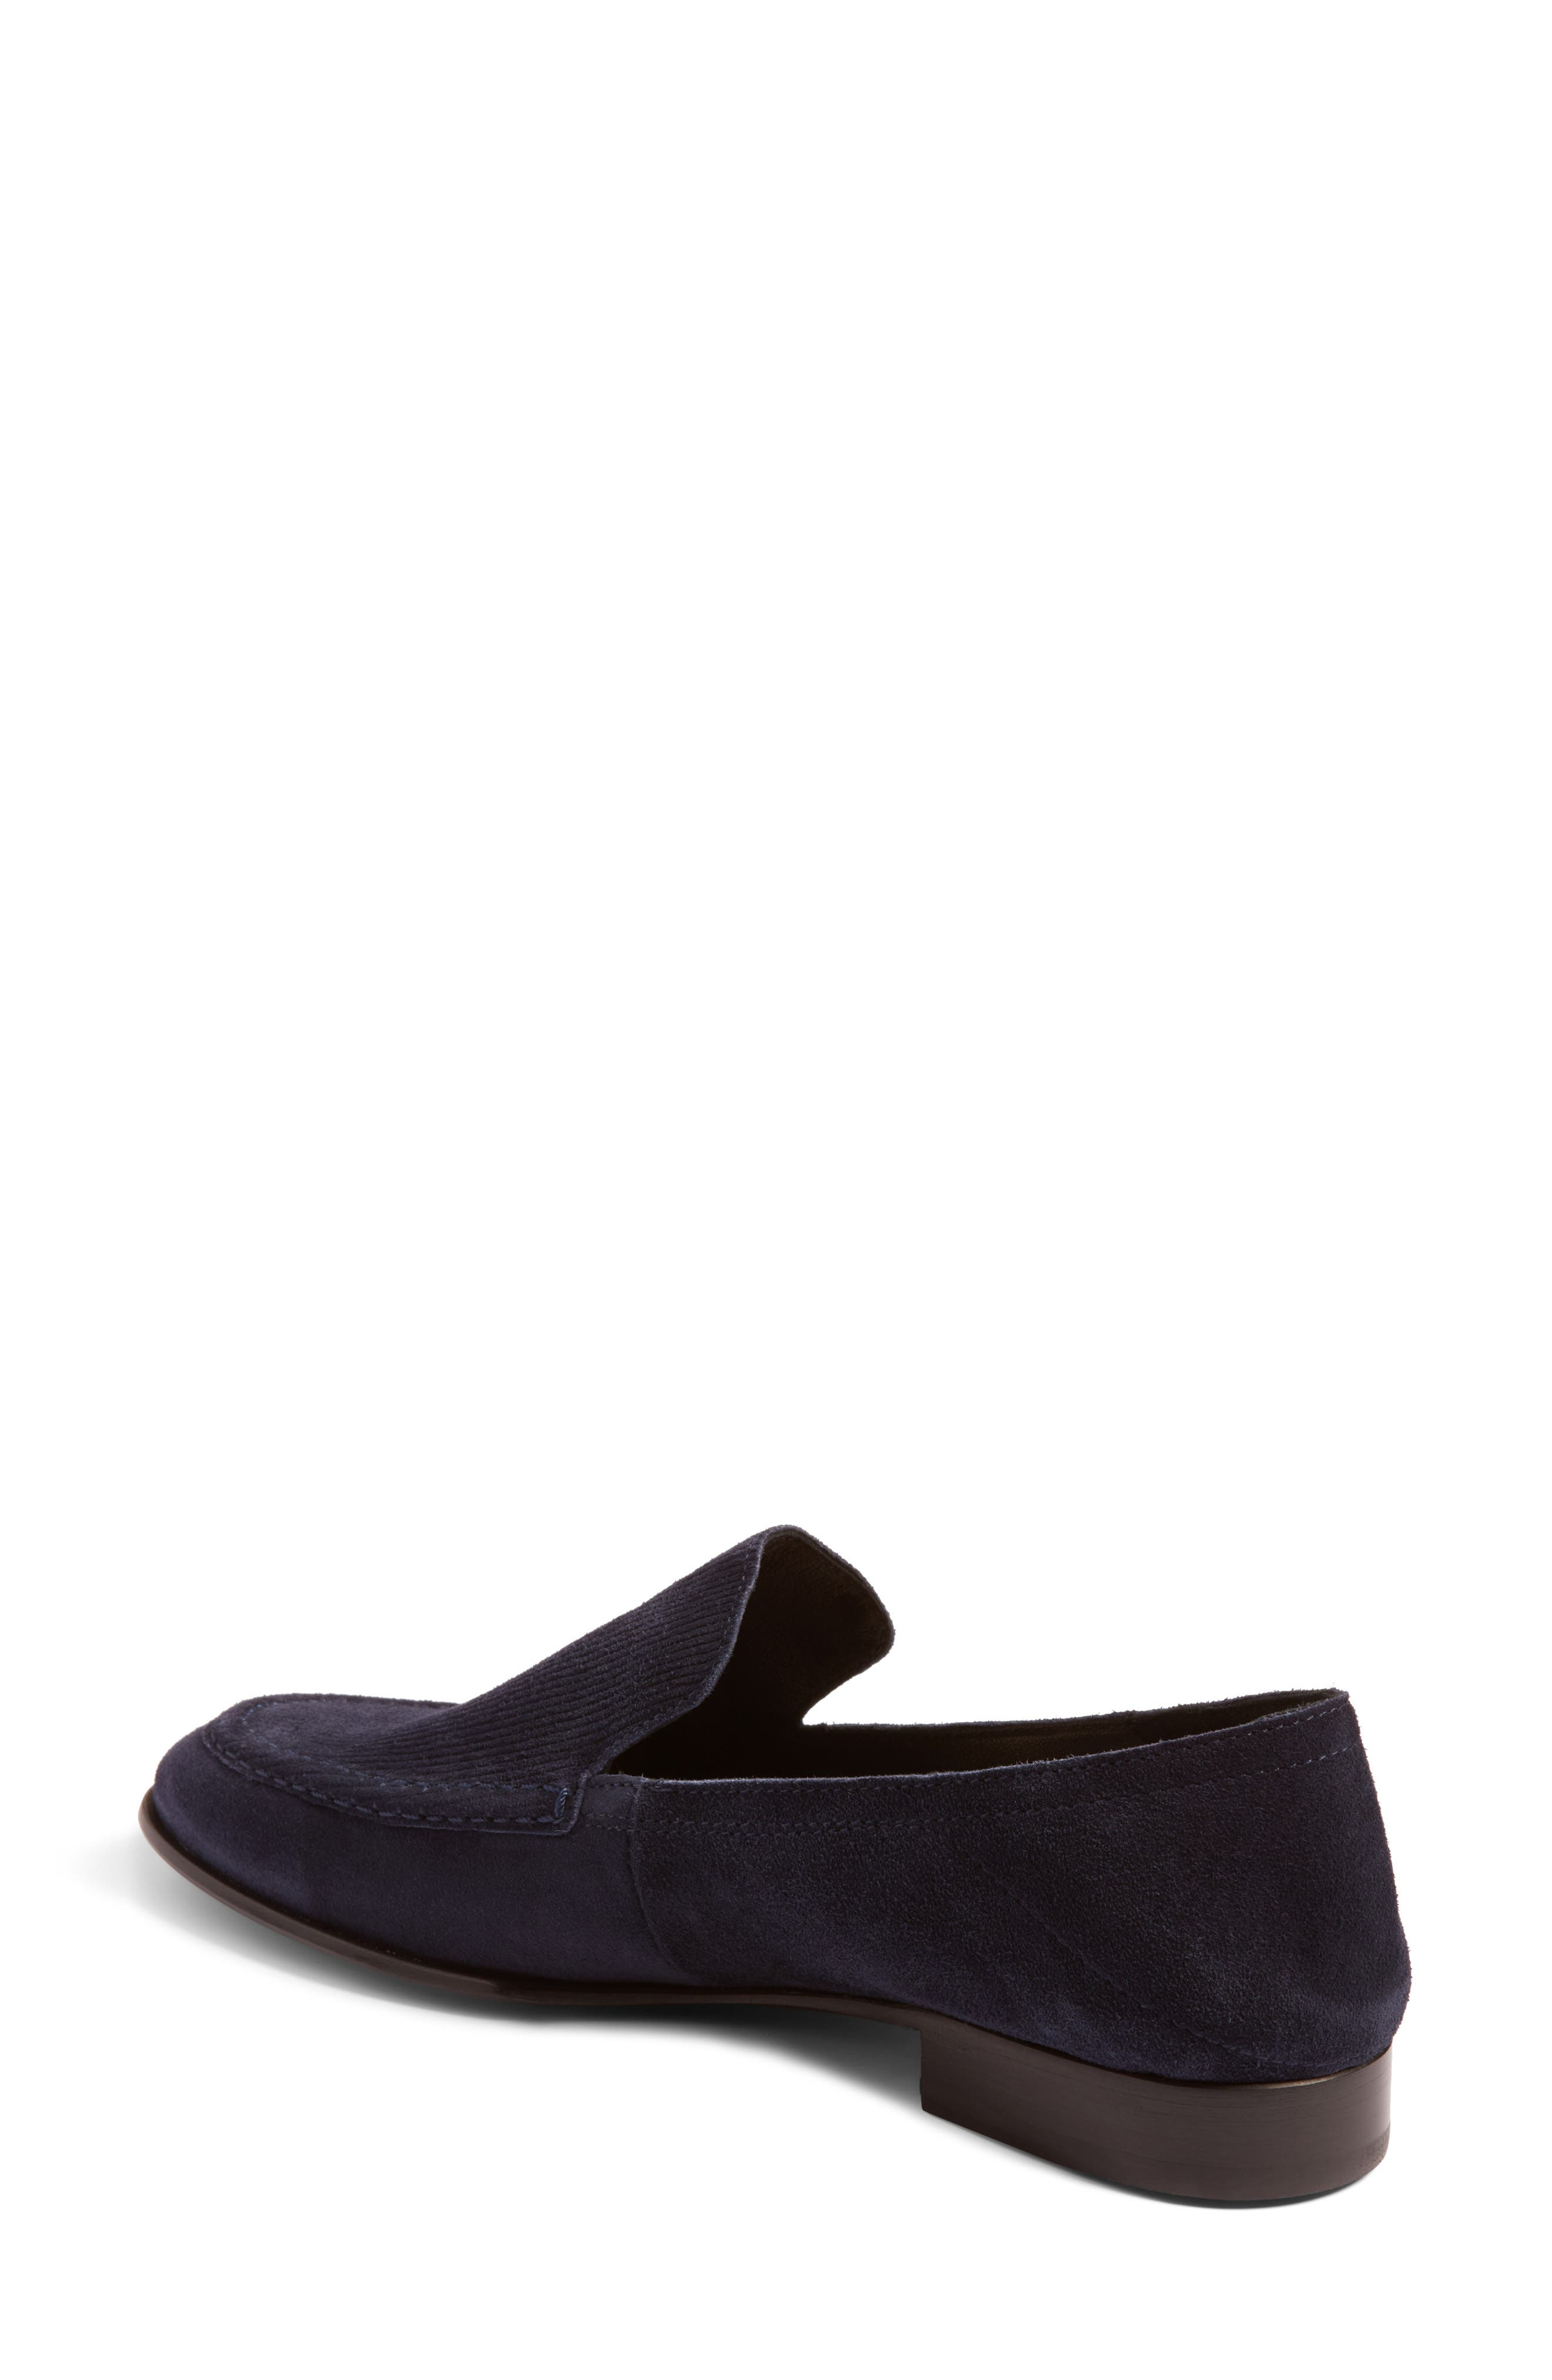 Alix Convertible Loafer,                             Alternate thumbnail 3, color,                             Navy Suede